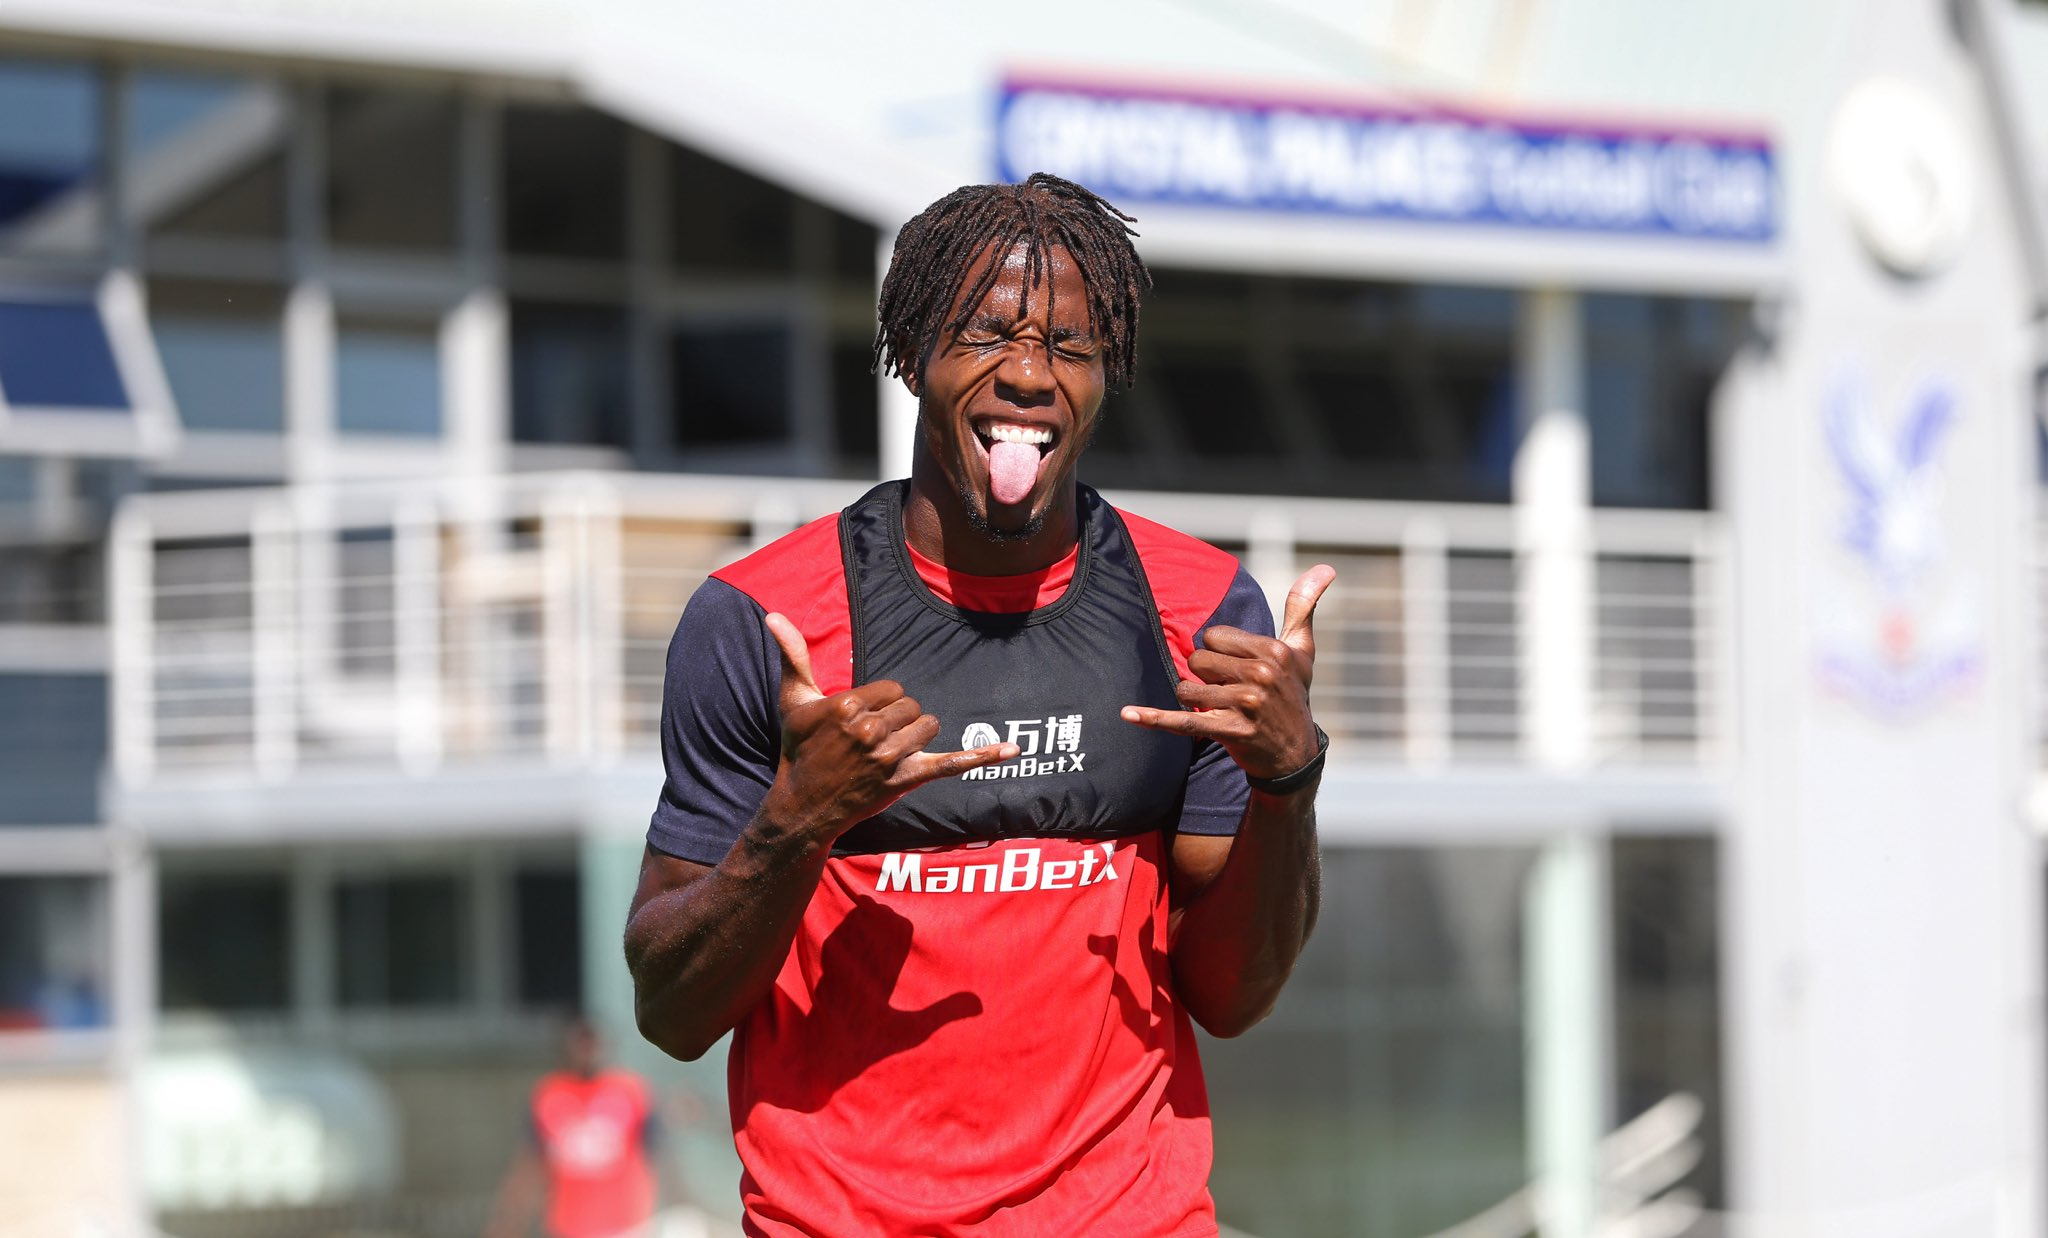 Wilfried Zaha, Fantasy Premier League, Premier League, Gameweek 1, FPL, Fantasy Football, FPL Tips, FPL Tricks, Manchester United F.C., Liverpool F.C., Alexis Sanchez, Roberto Firmino